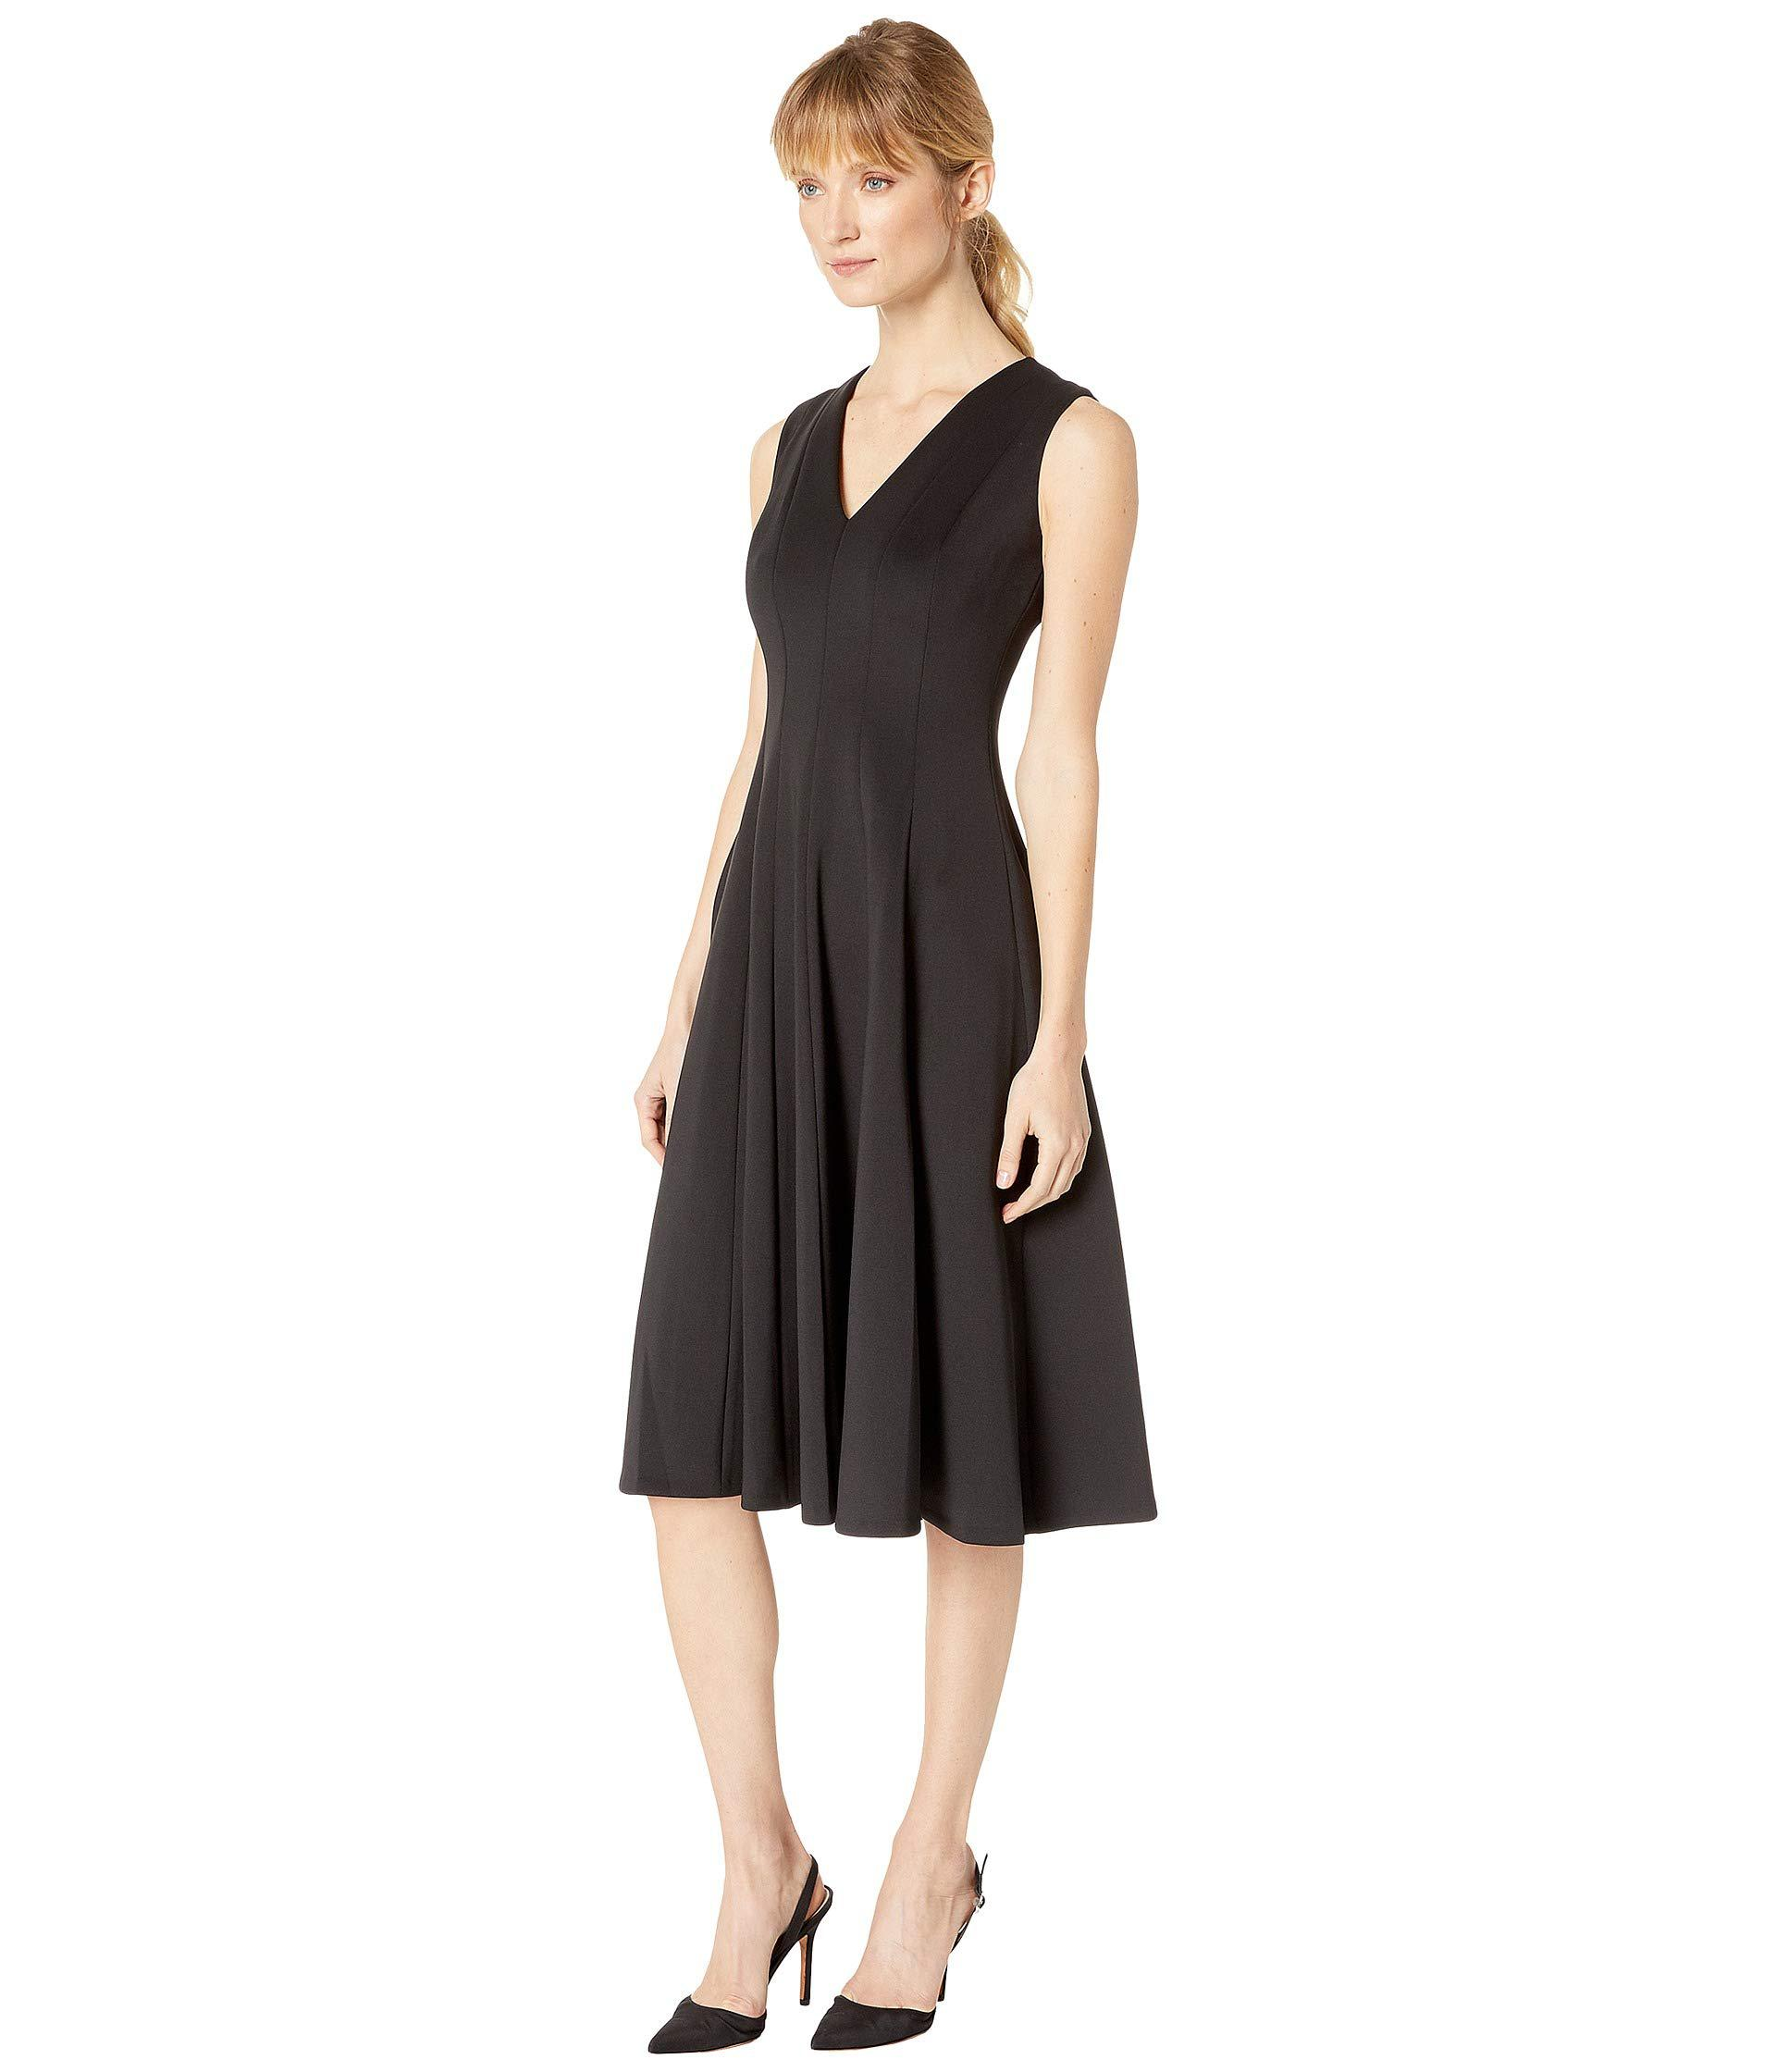 97d4834d1c17ef Lyst - Calvin Klein V-neck Scuba Fit Flare Dress Cd8m18yj (black) Women s  Dress in Black